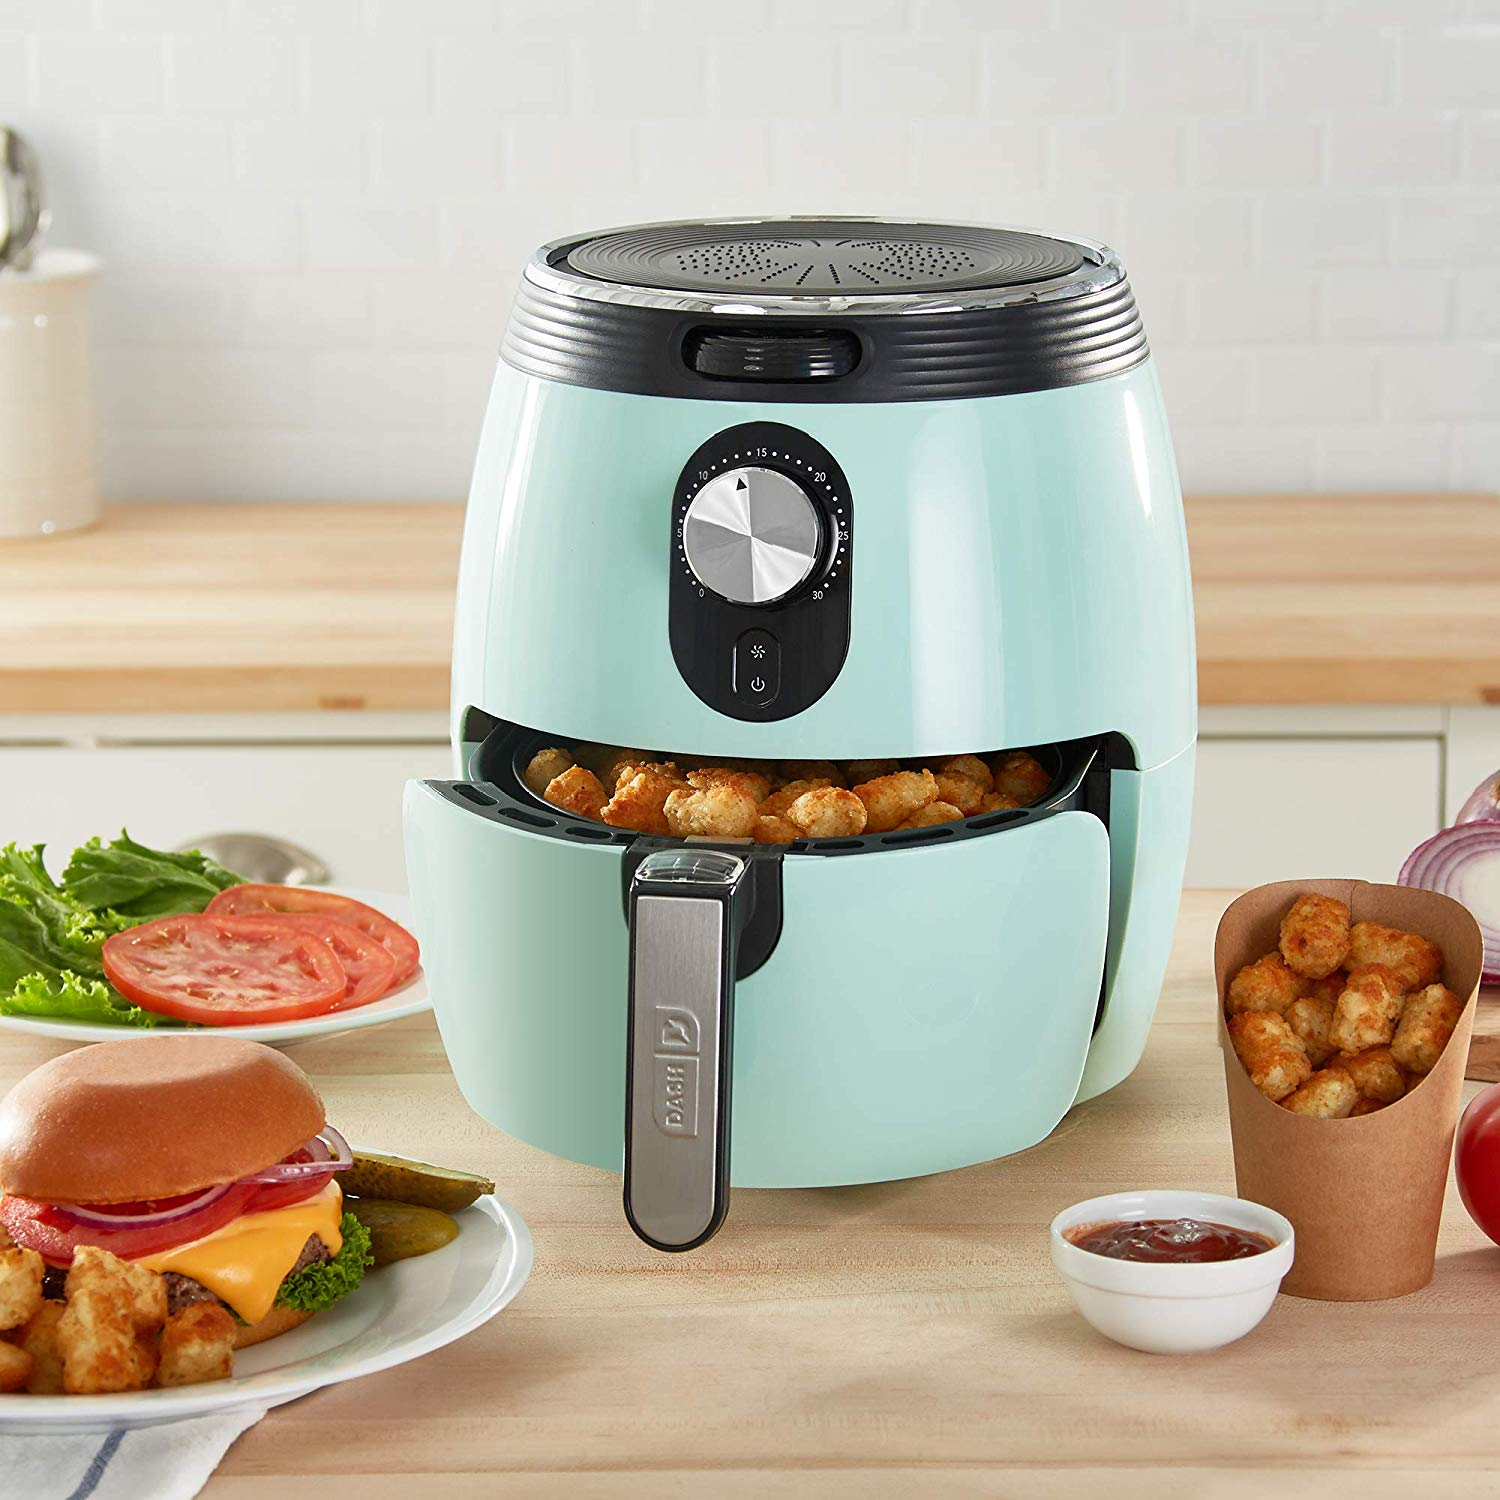 DASH DMAF355GBAQ02 Deluxe Electric Air Fryer + Oven Cooker